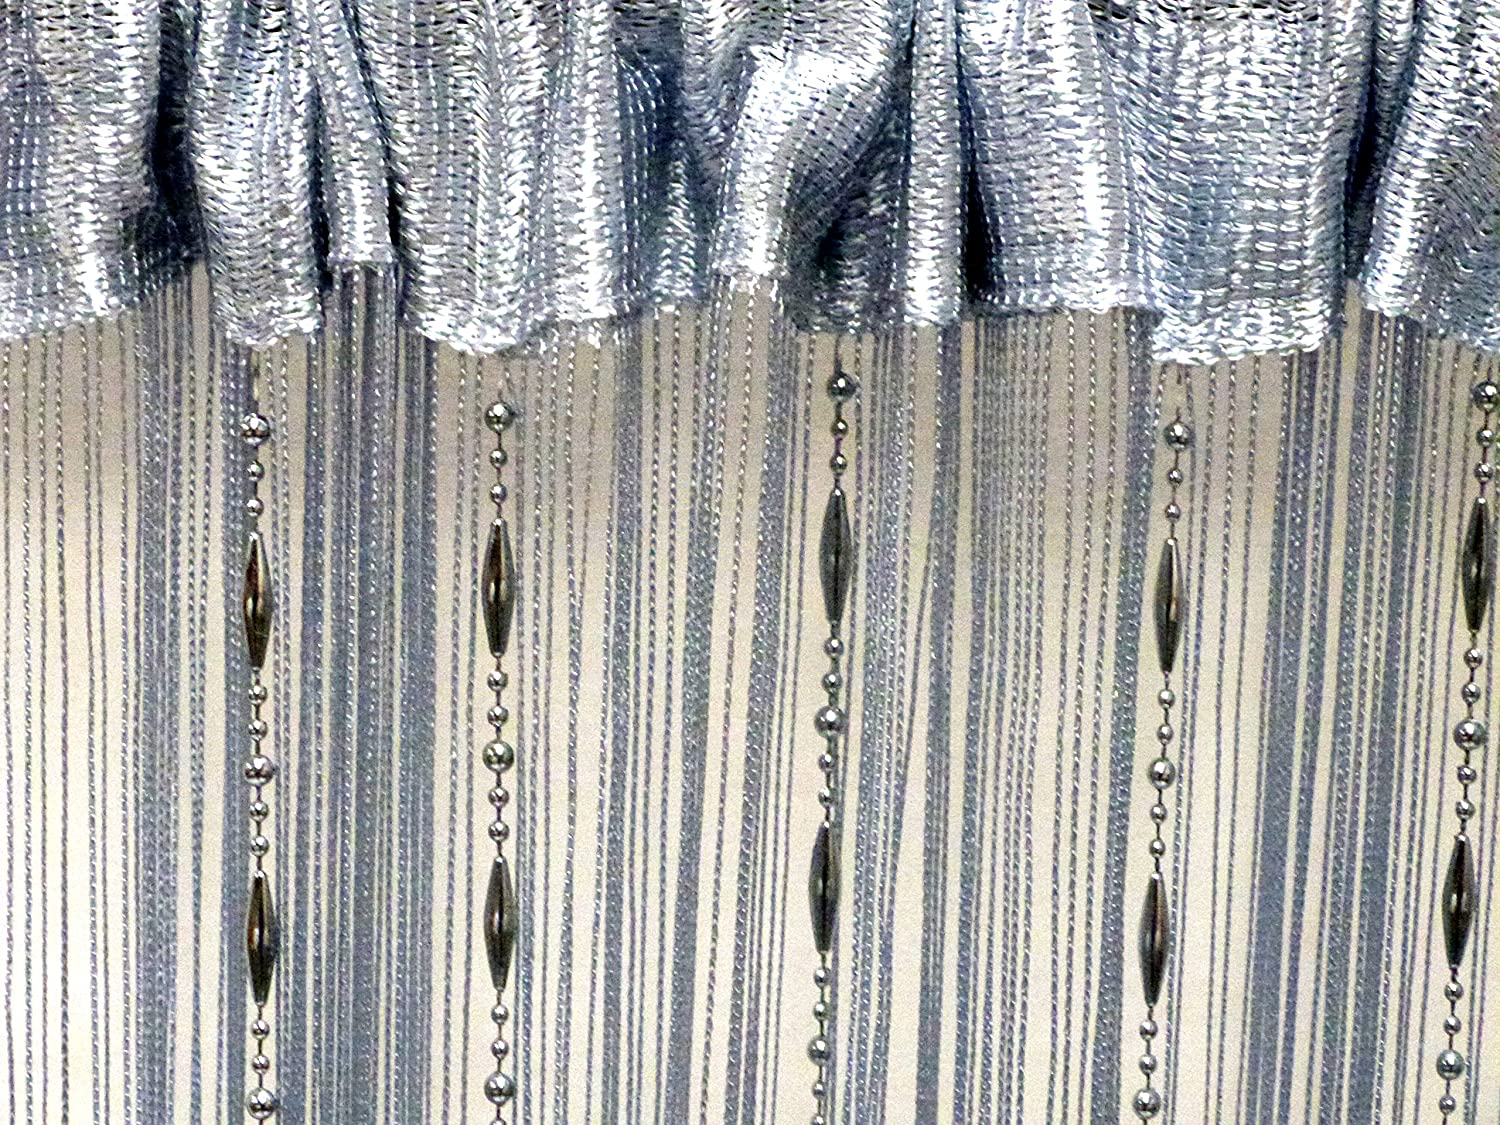 STRING CURTAINS BLINDS FLY SCREEN PATIO DOOR DIVIDER DOOR WINDOW FRINGE CURTAINS (Chain Bead Silver)